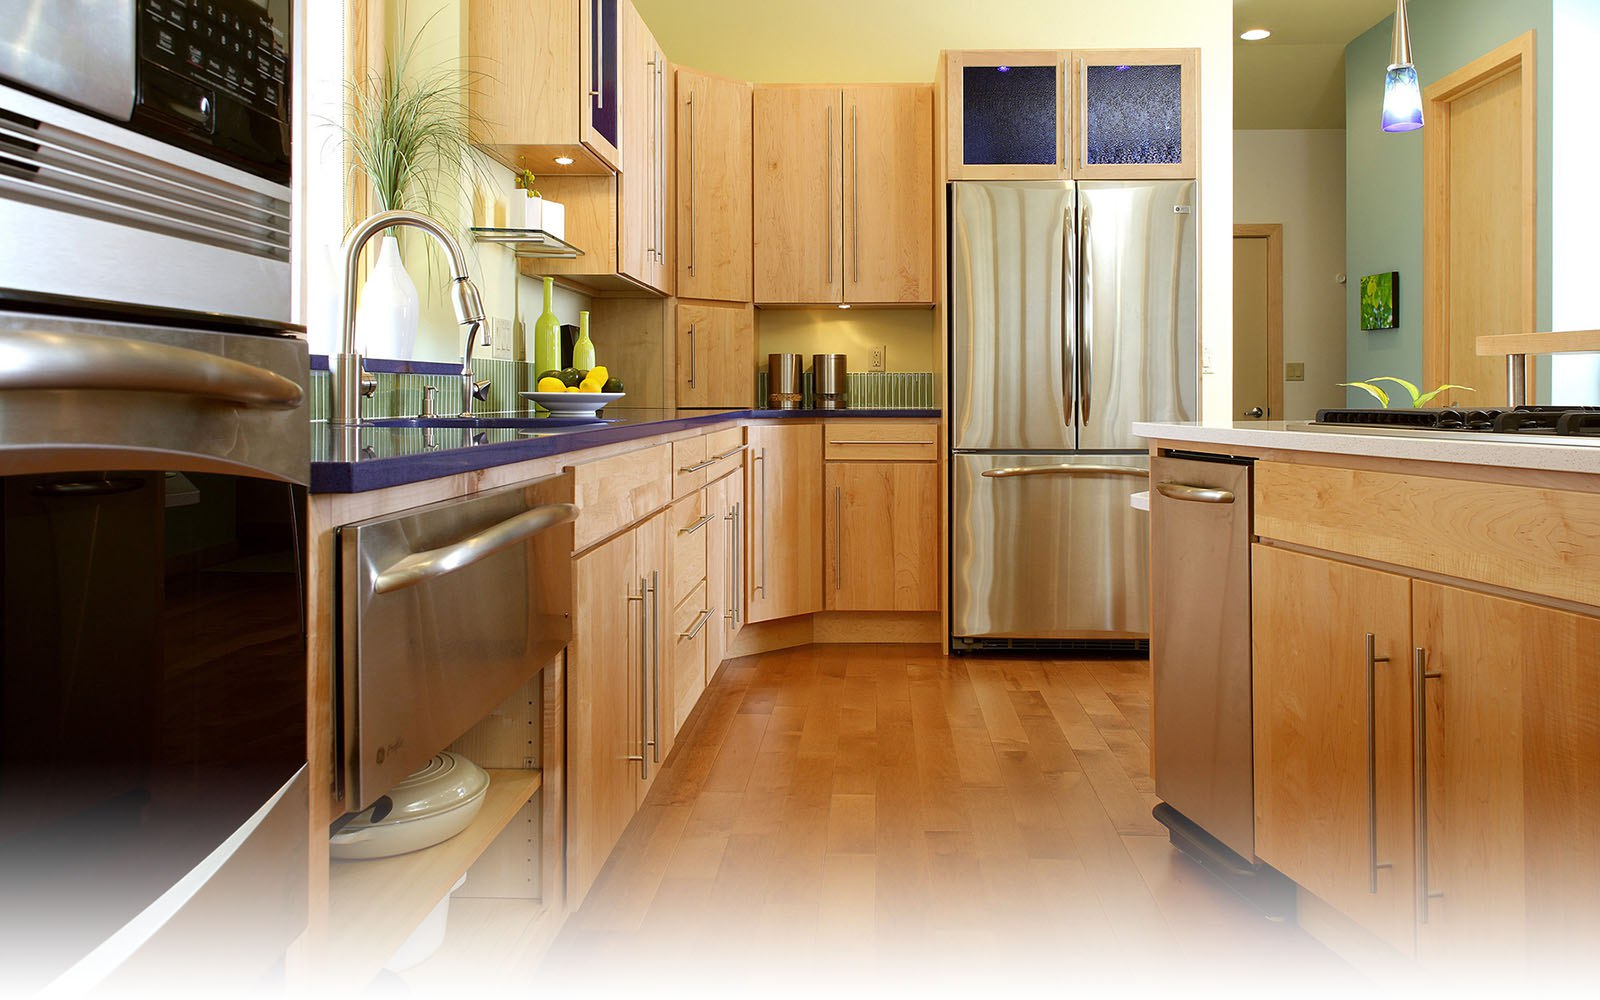 Kitchen Cabinets and Kitchen Remodeling - Norfolk Kitchen & Bath